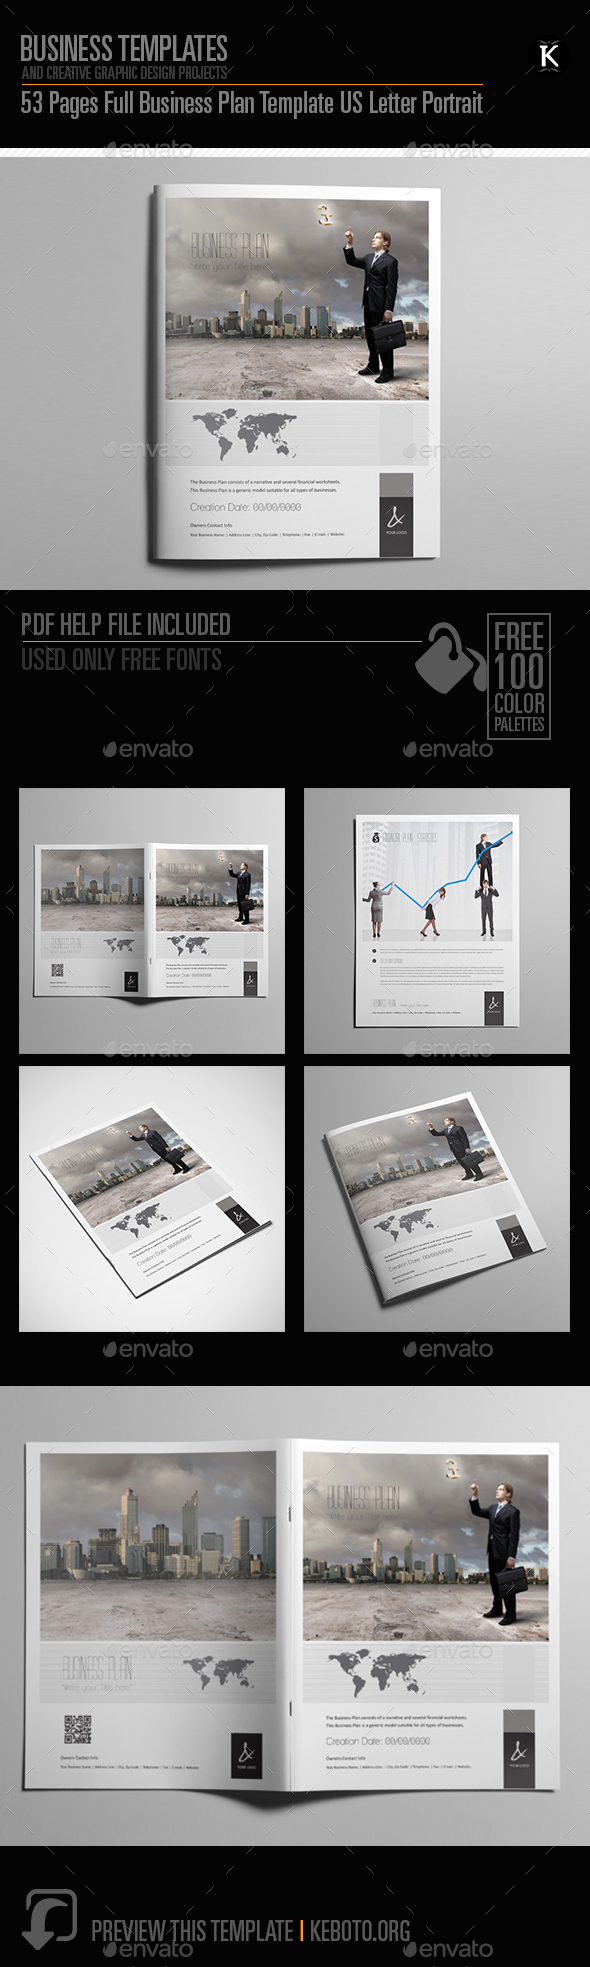 Business plan template pages graphics designs templates